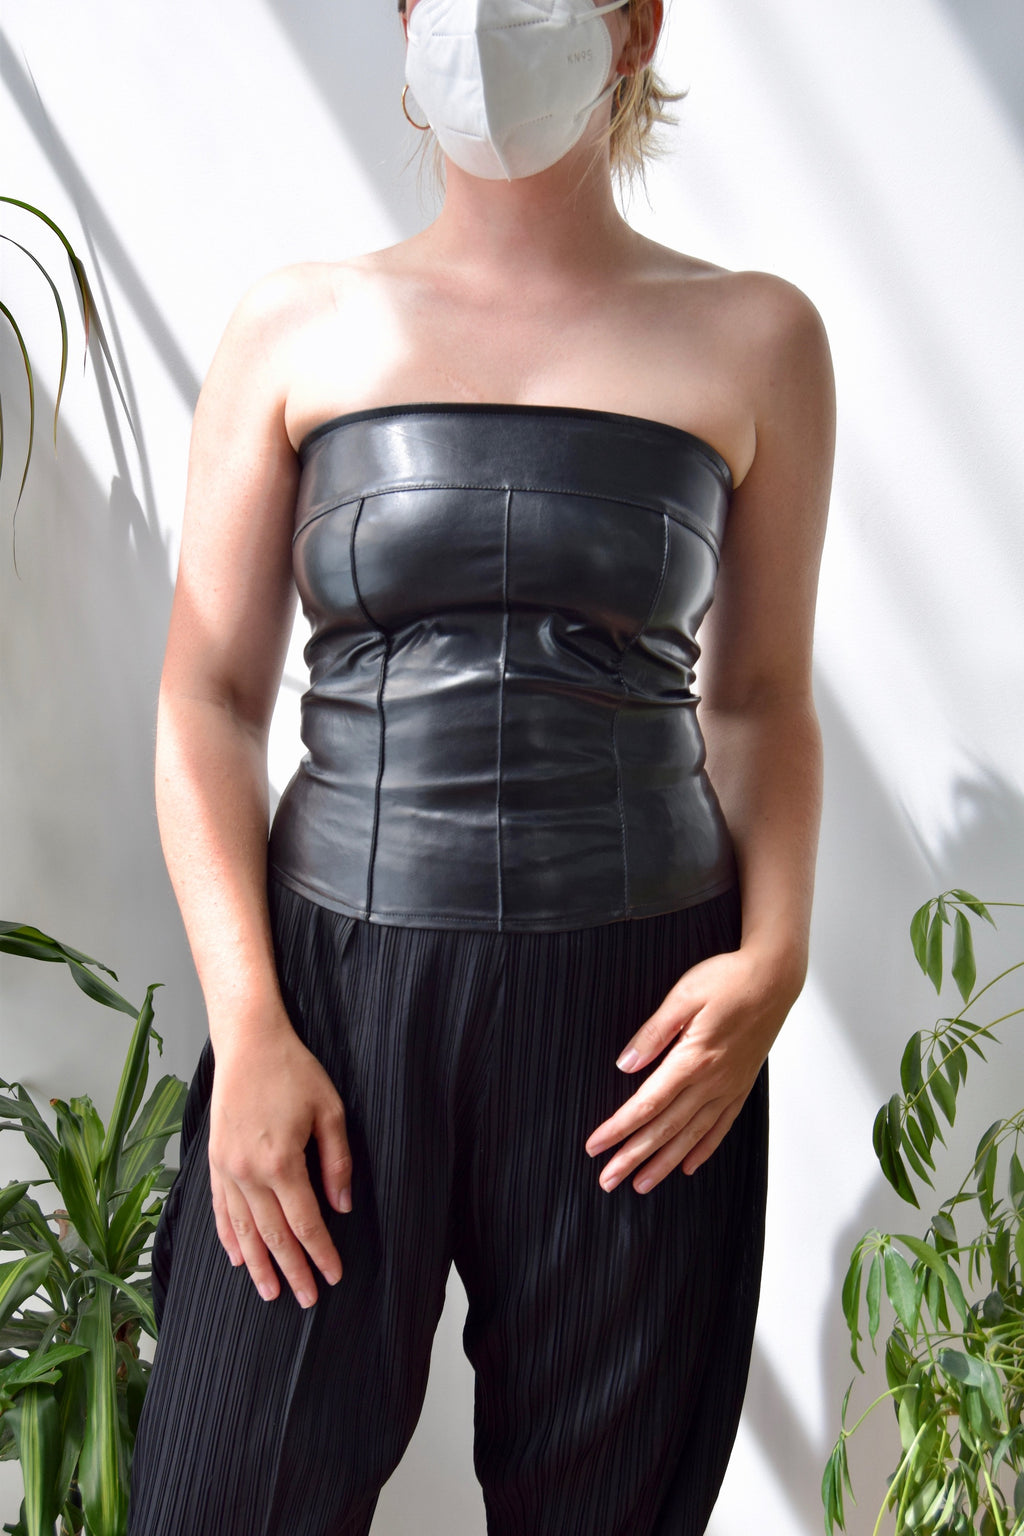 00's Pleather Bustier